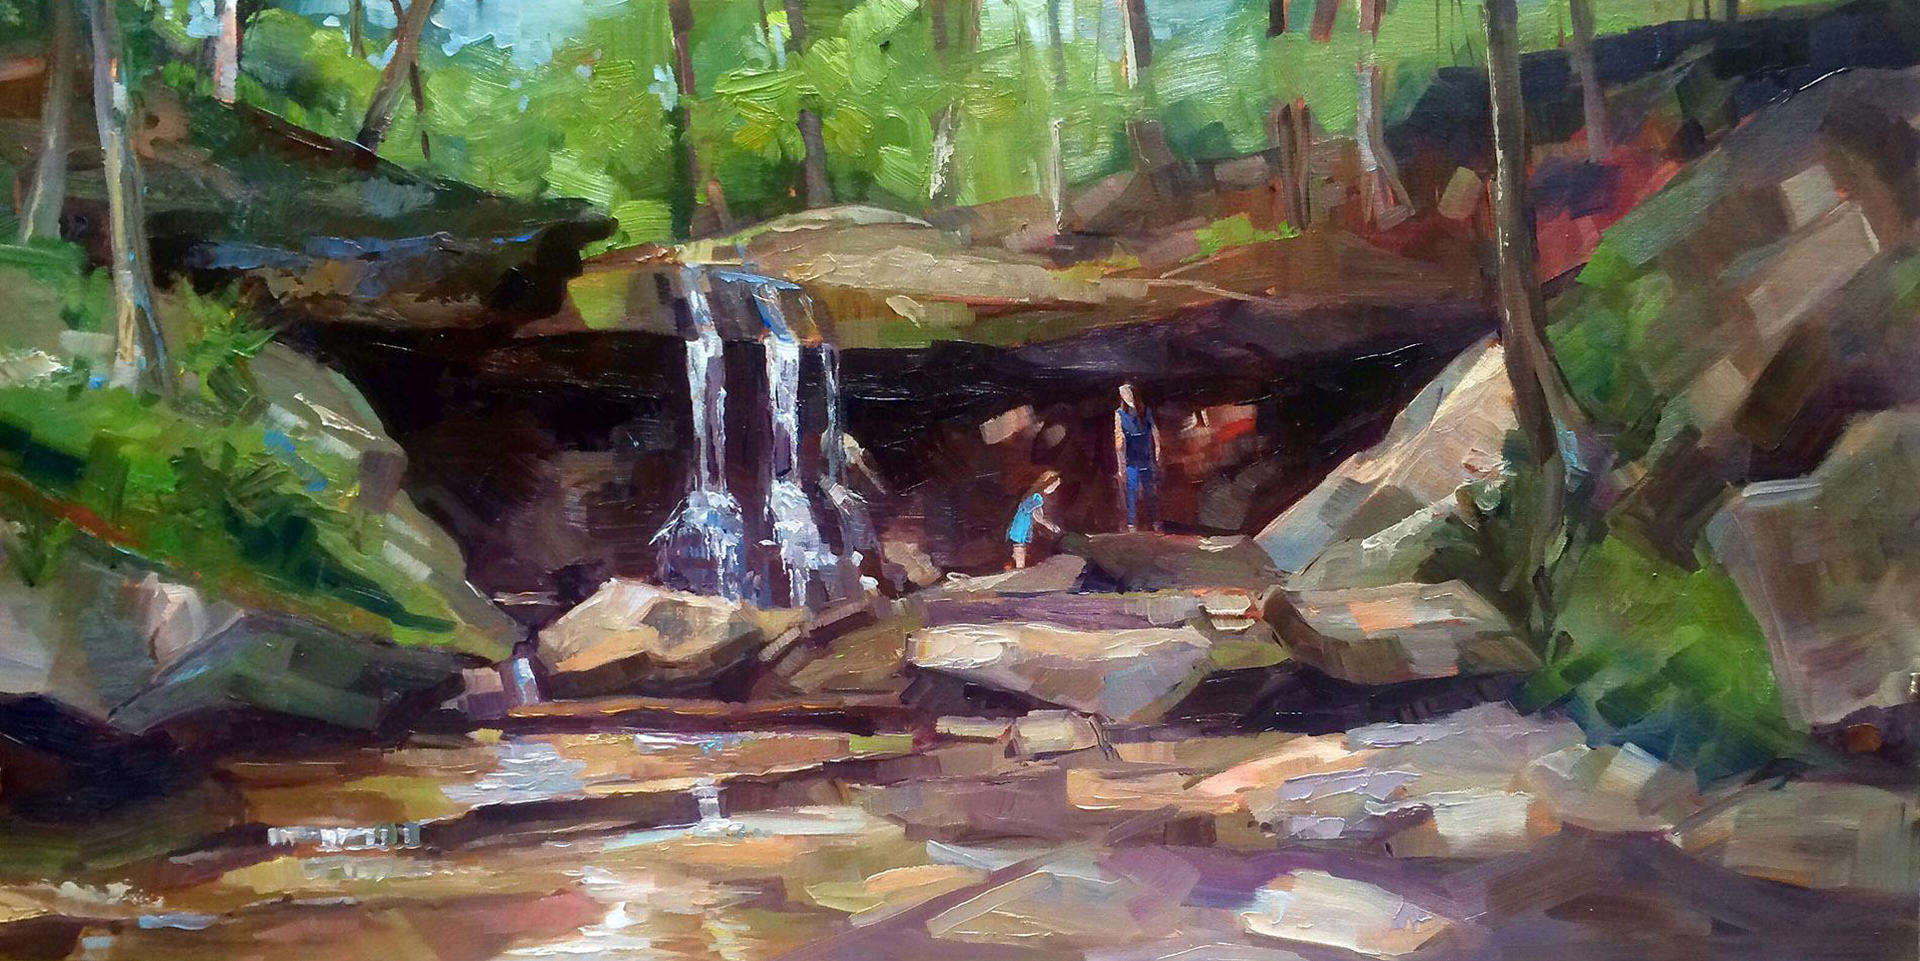 Kathleen Gray Farthing | JUNE MORNING AT BLUE HEN FALLS | oil | frame size 17x29